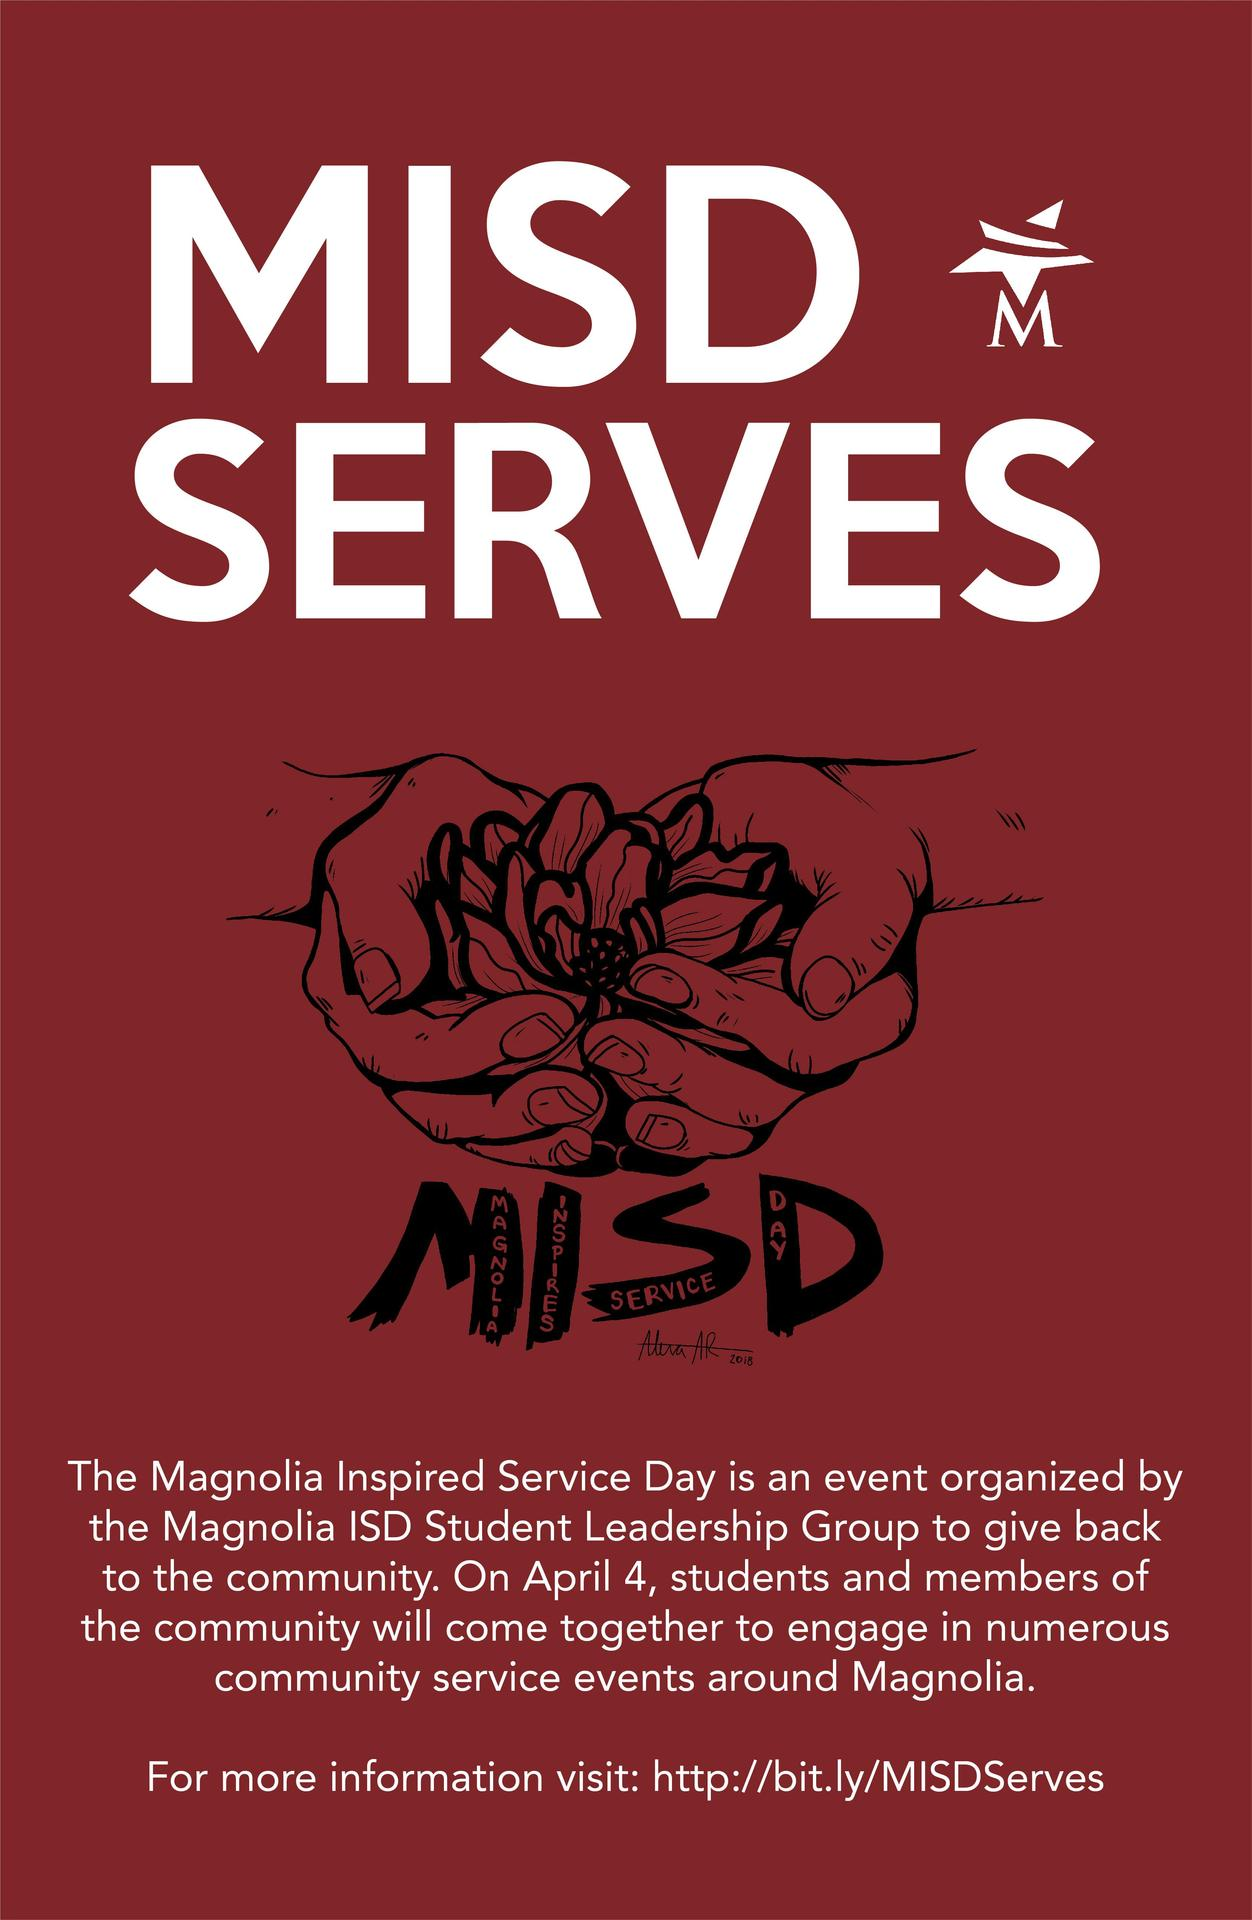 Second Annual MISD Serves looking for projects and volunteers